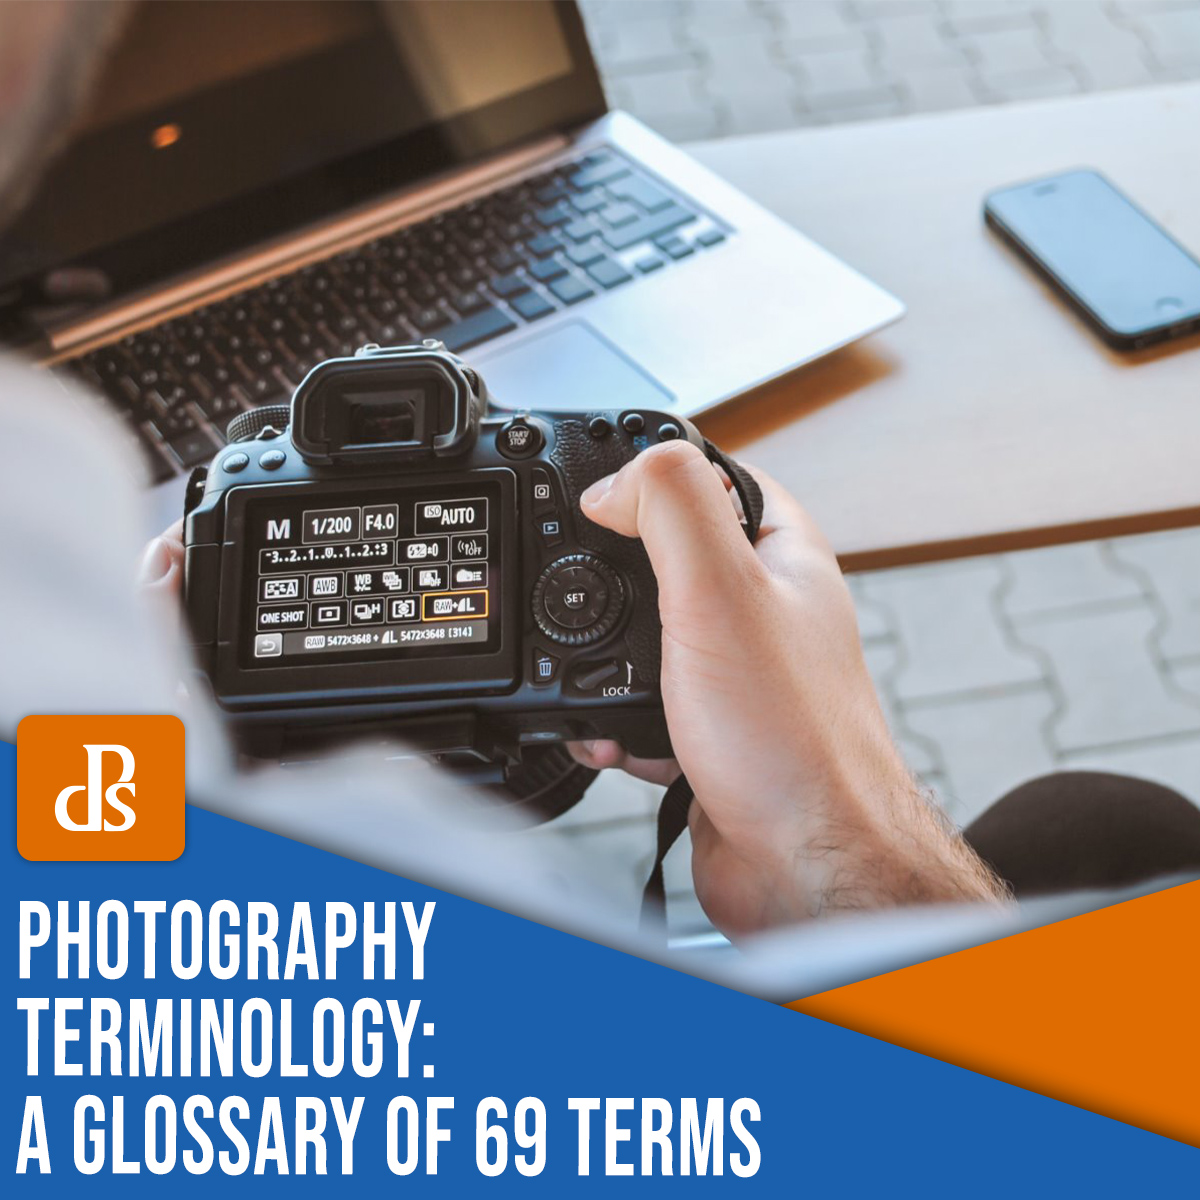 Photography Terminology: A Glossary of 69 Essential Photographic Terms